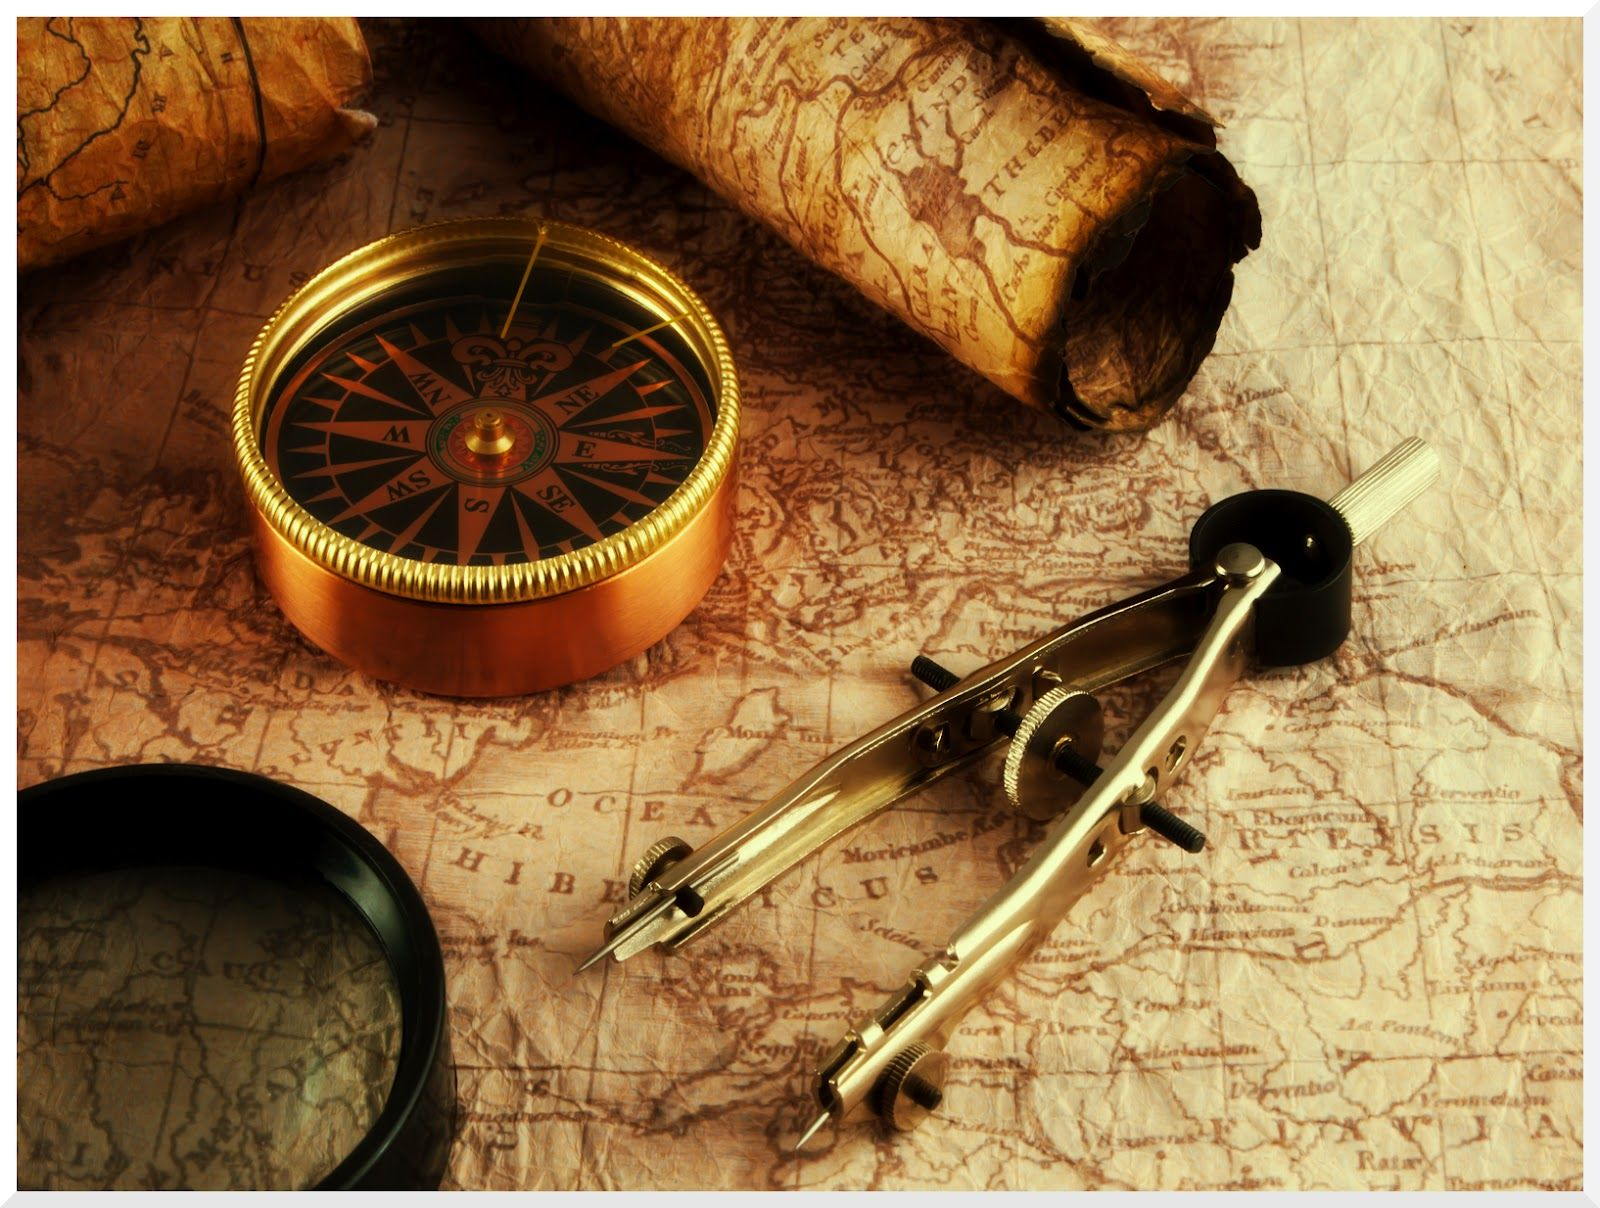 Vintage Old Map And Compass Jpg 1600 1208 Vintage Compass Compass Wallpaper Map Compass